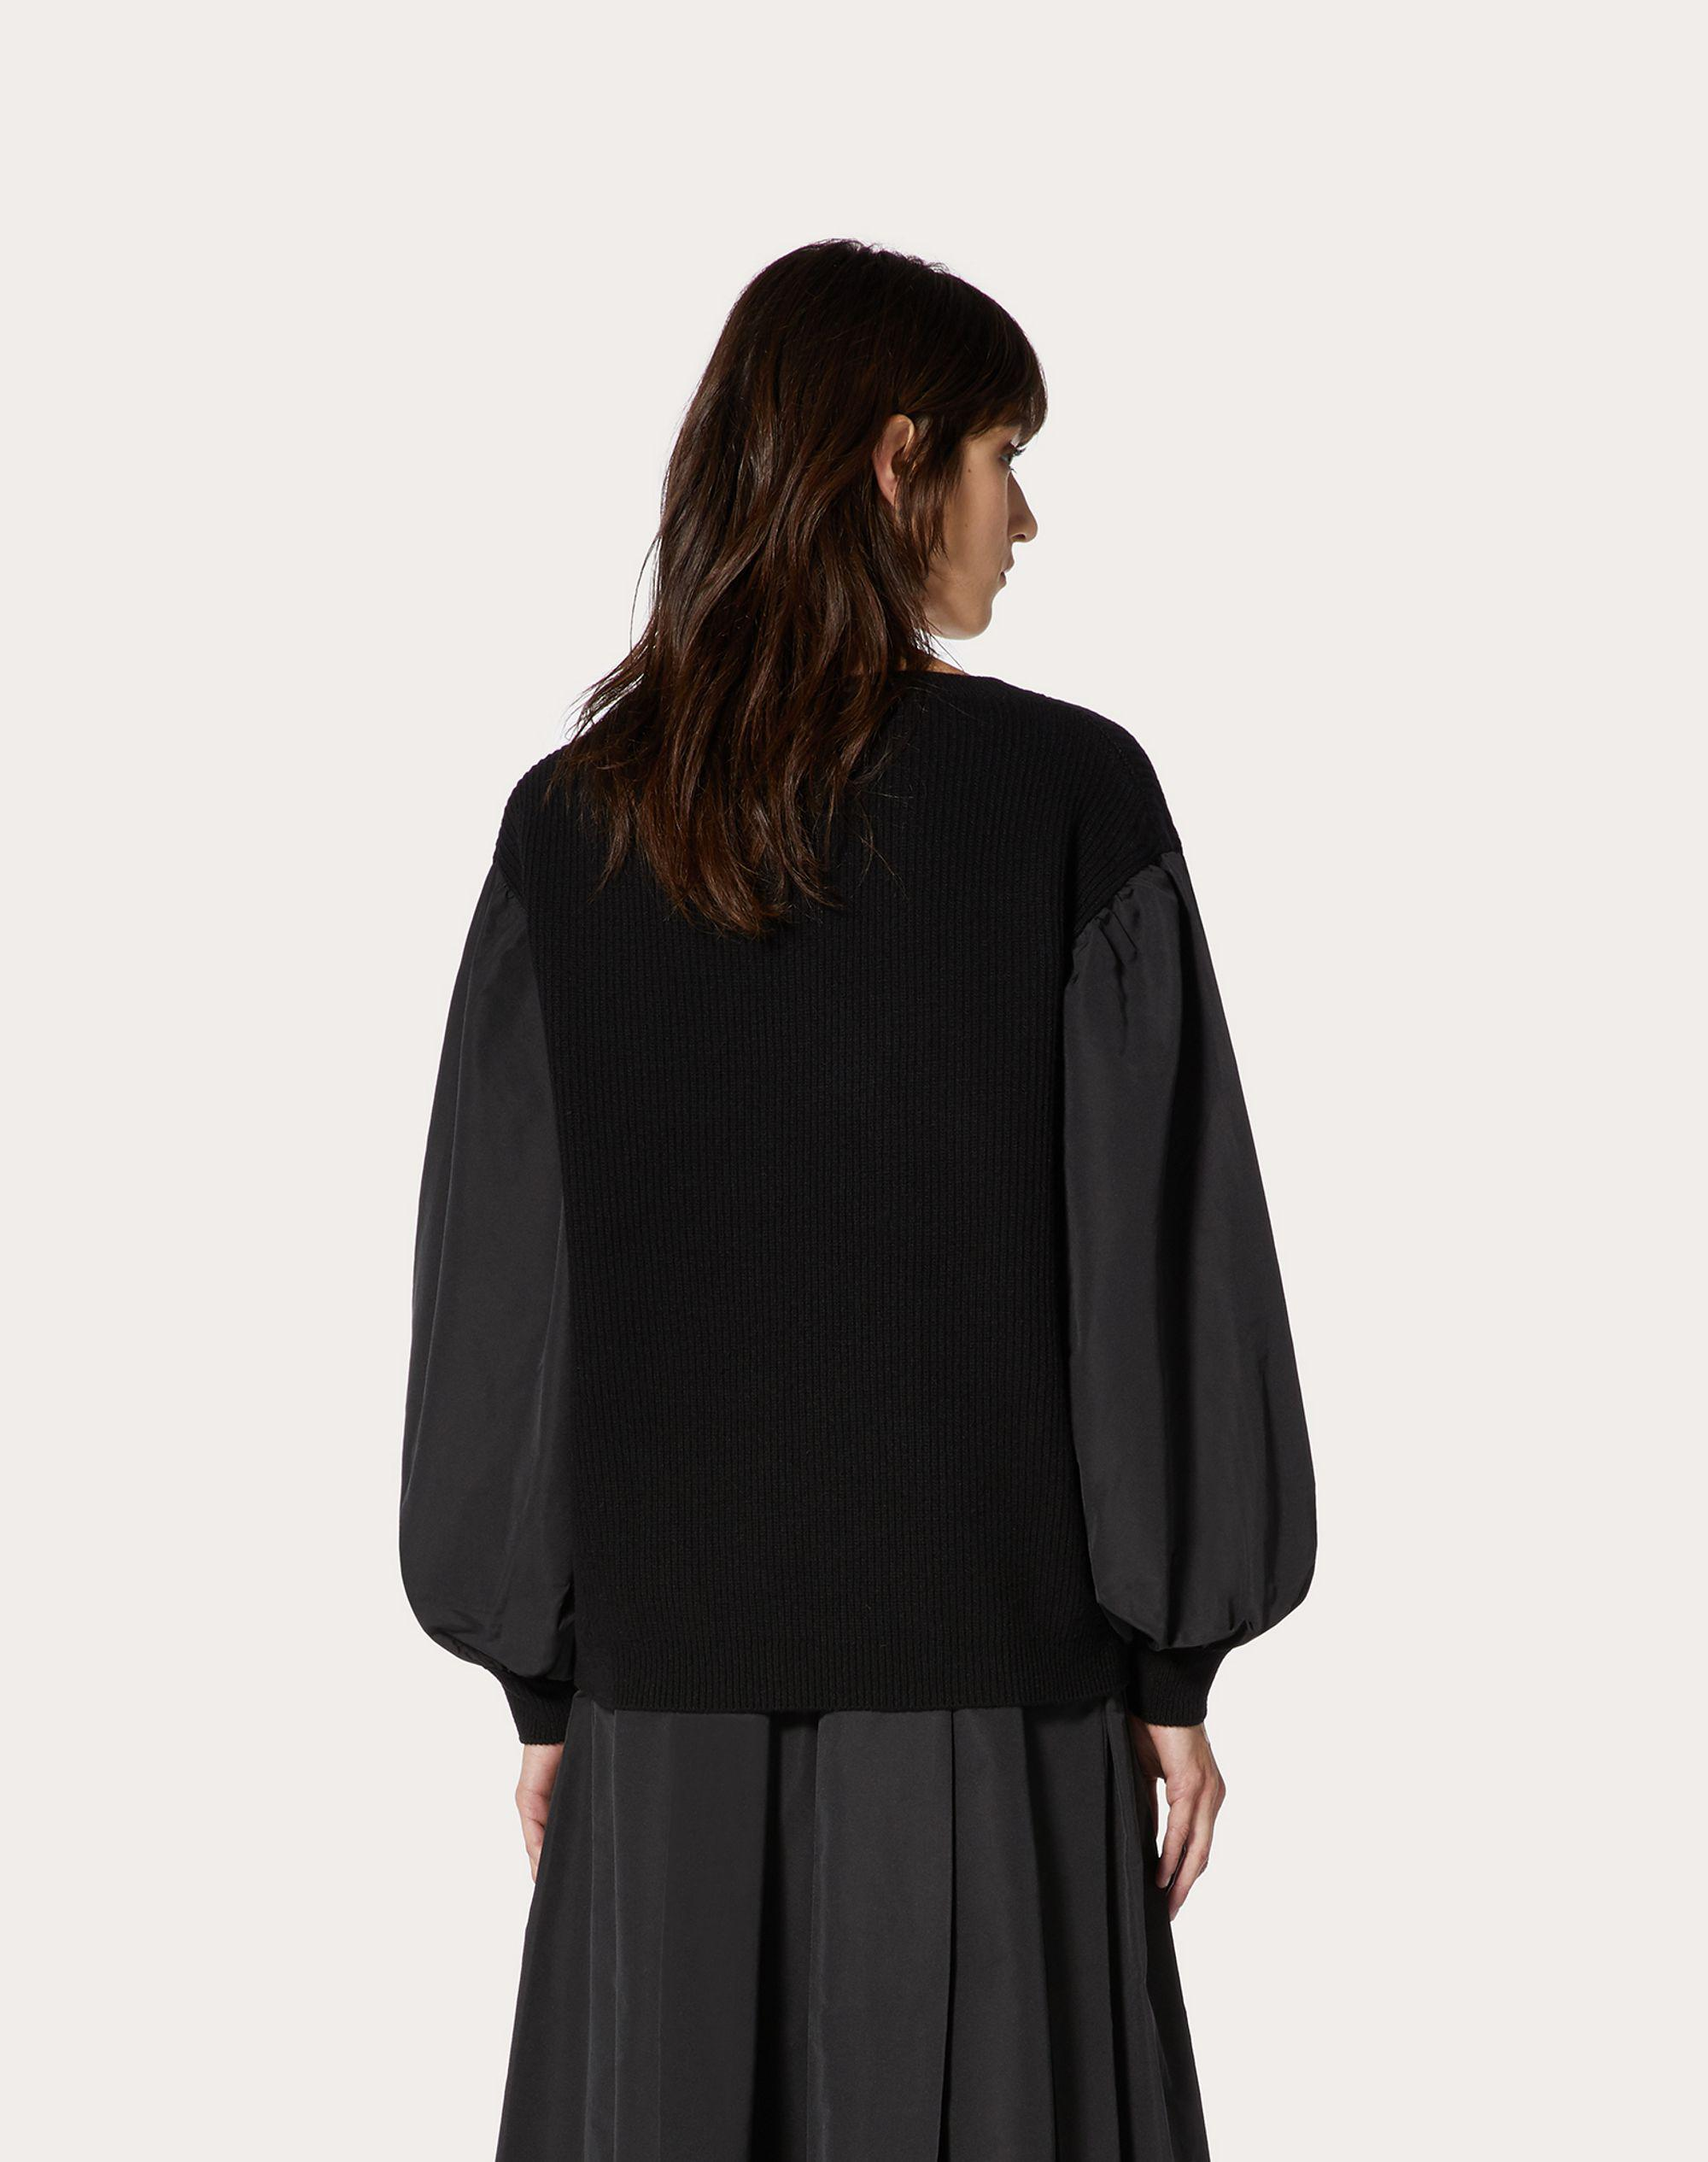 Cashmere Wool and Micro-Faille Sweater 2